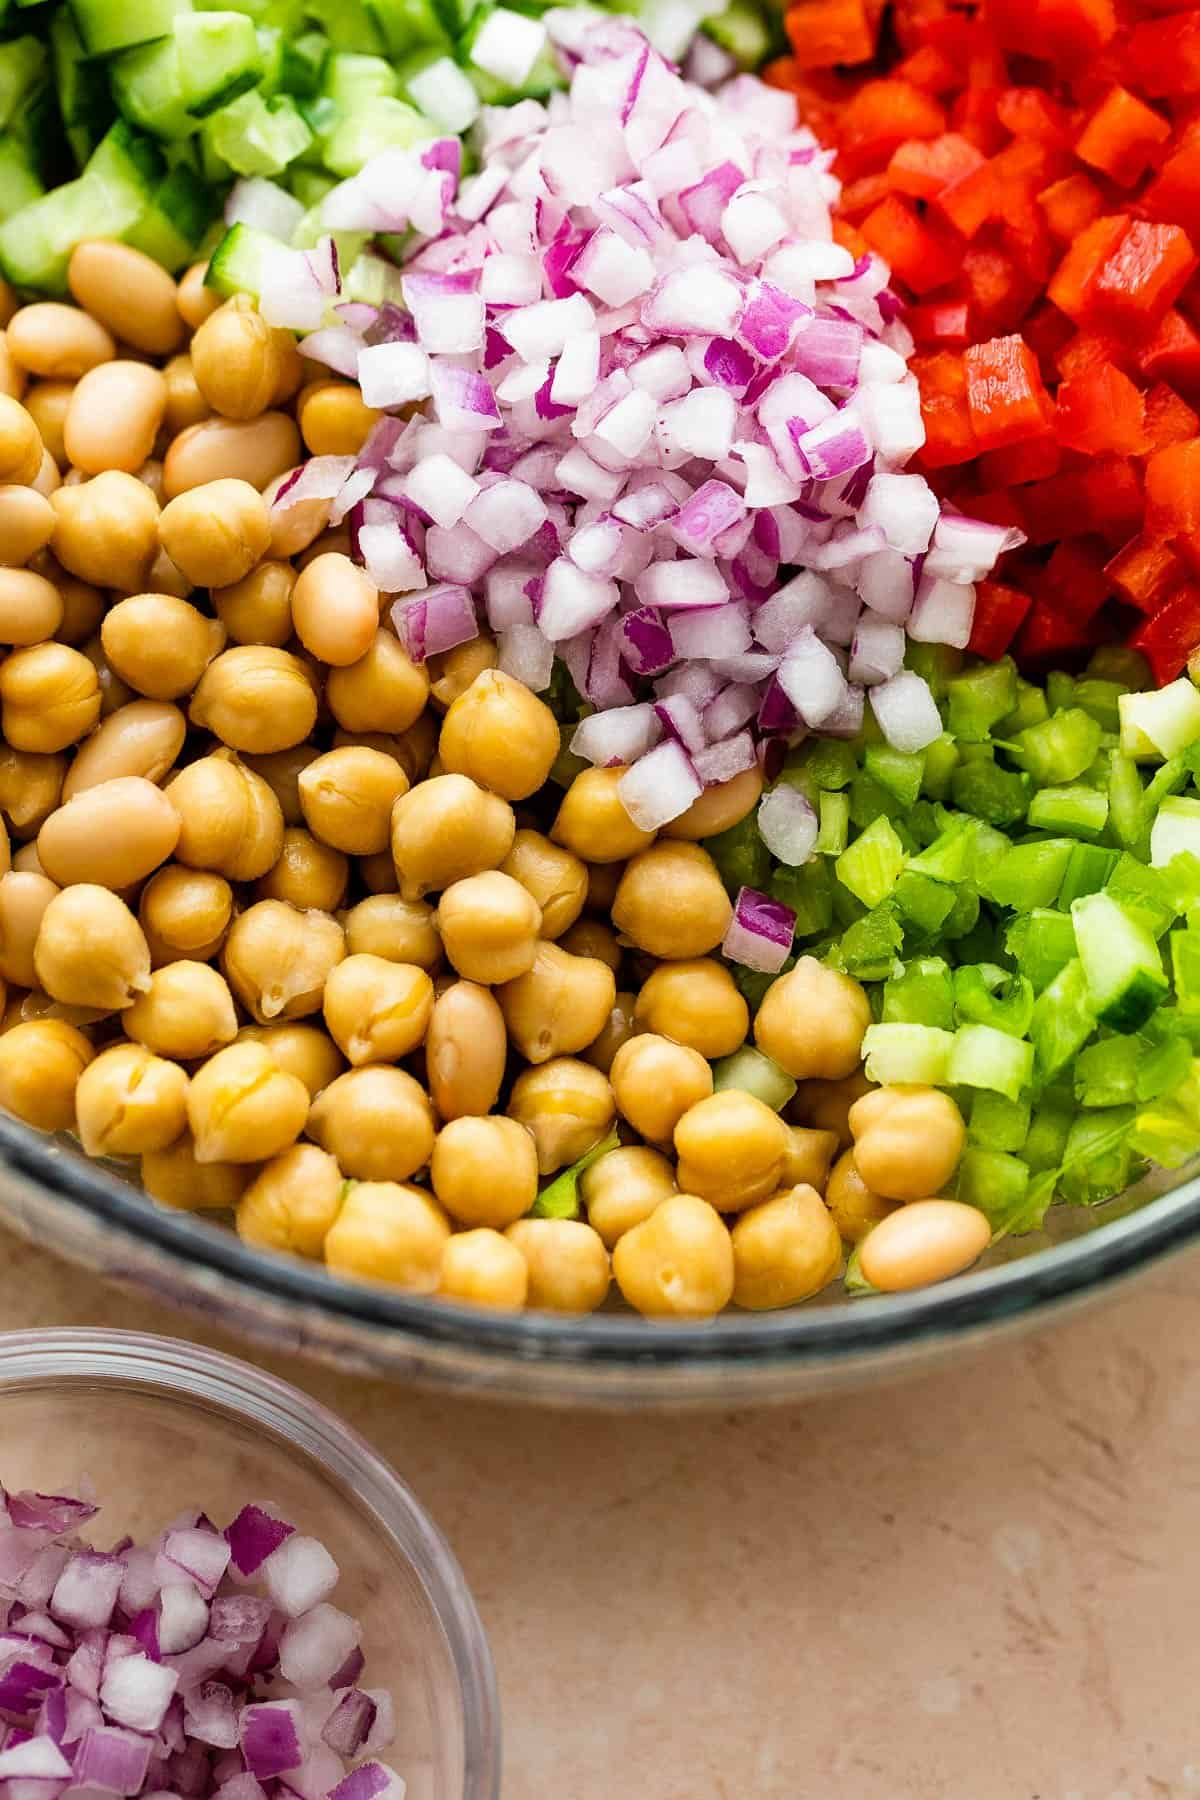 chickpeas, cucumbers, onions, and veggies arranged in a glass salad bowl